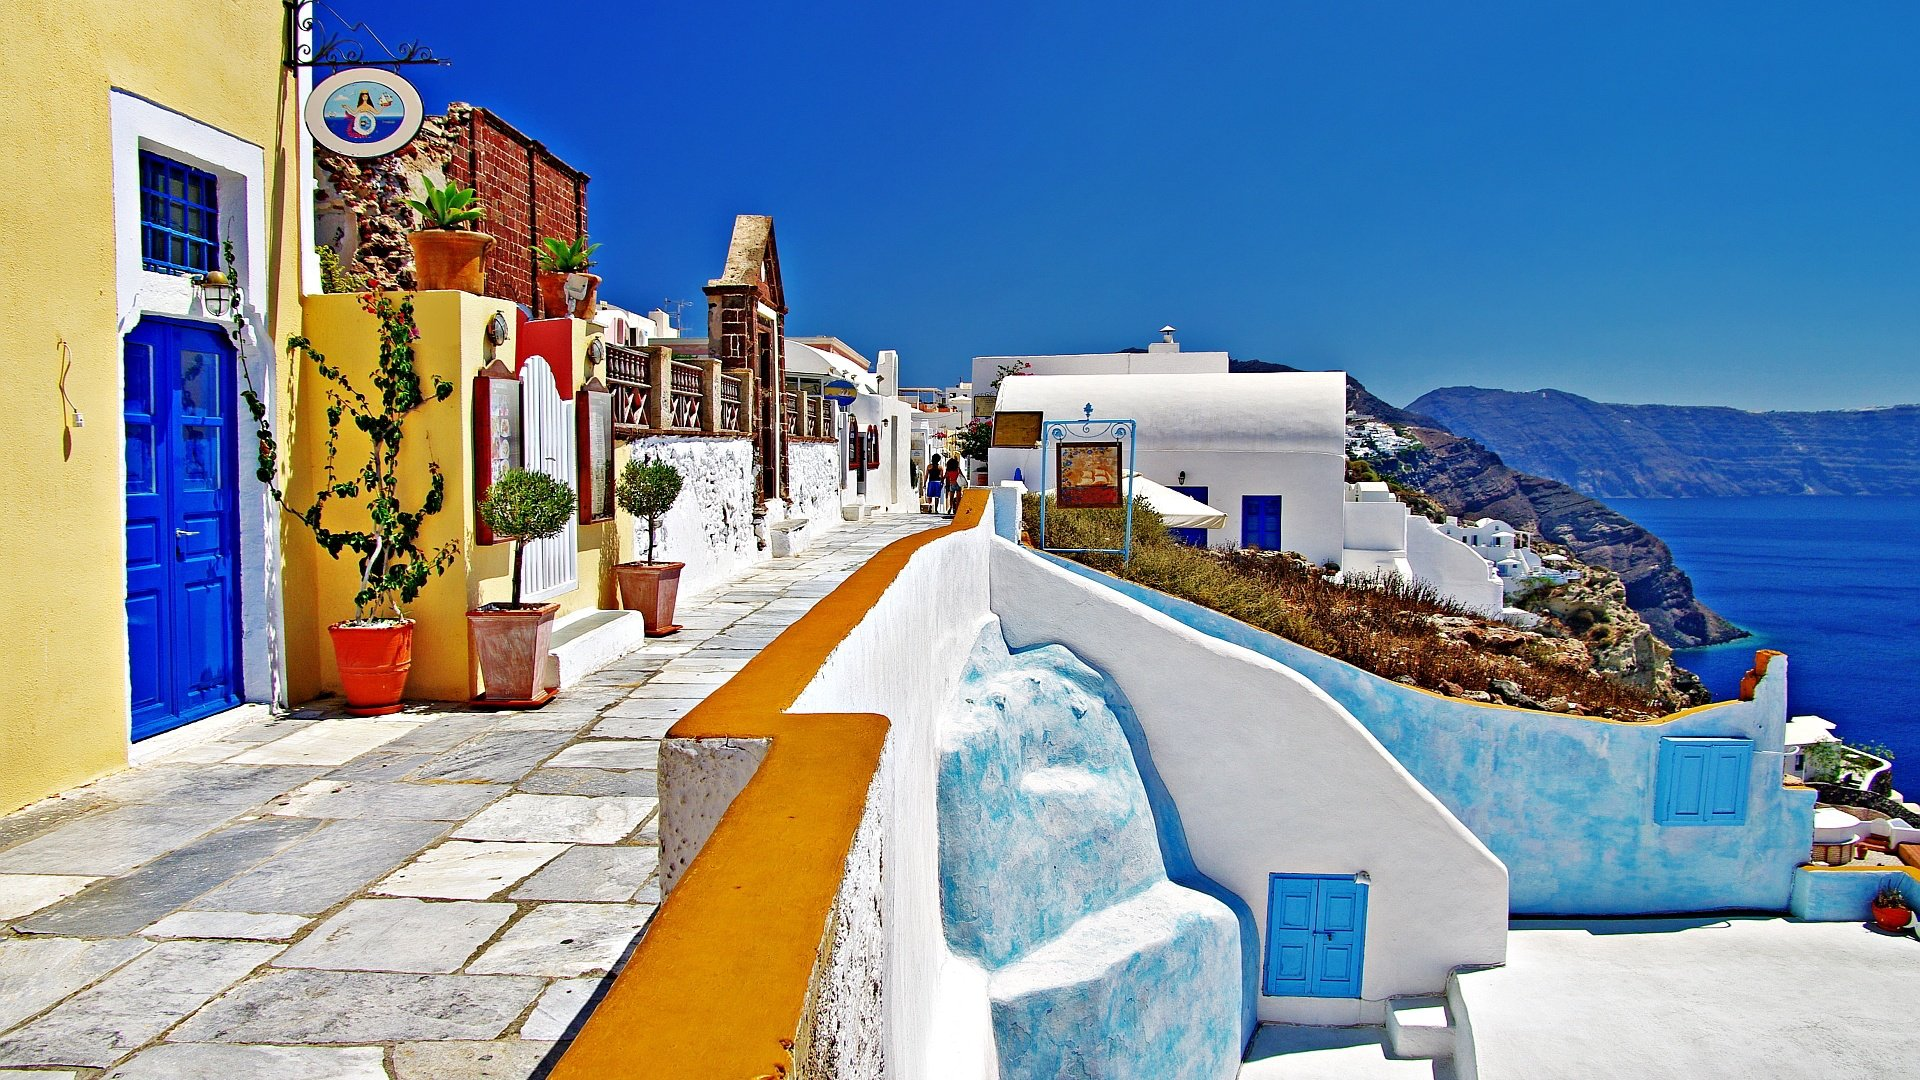 Santorini Greece HD Wallpaper Background Images 1920x1080